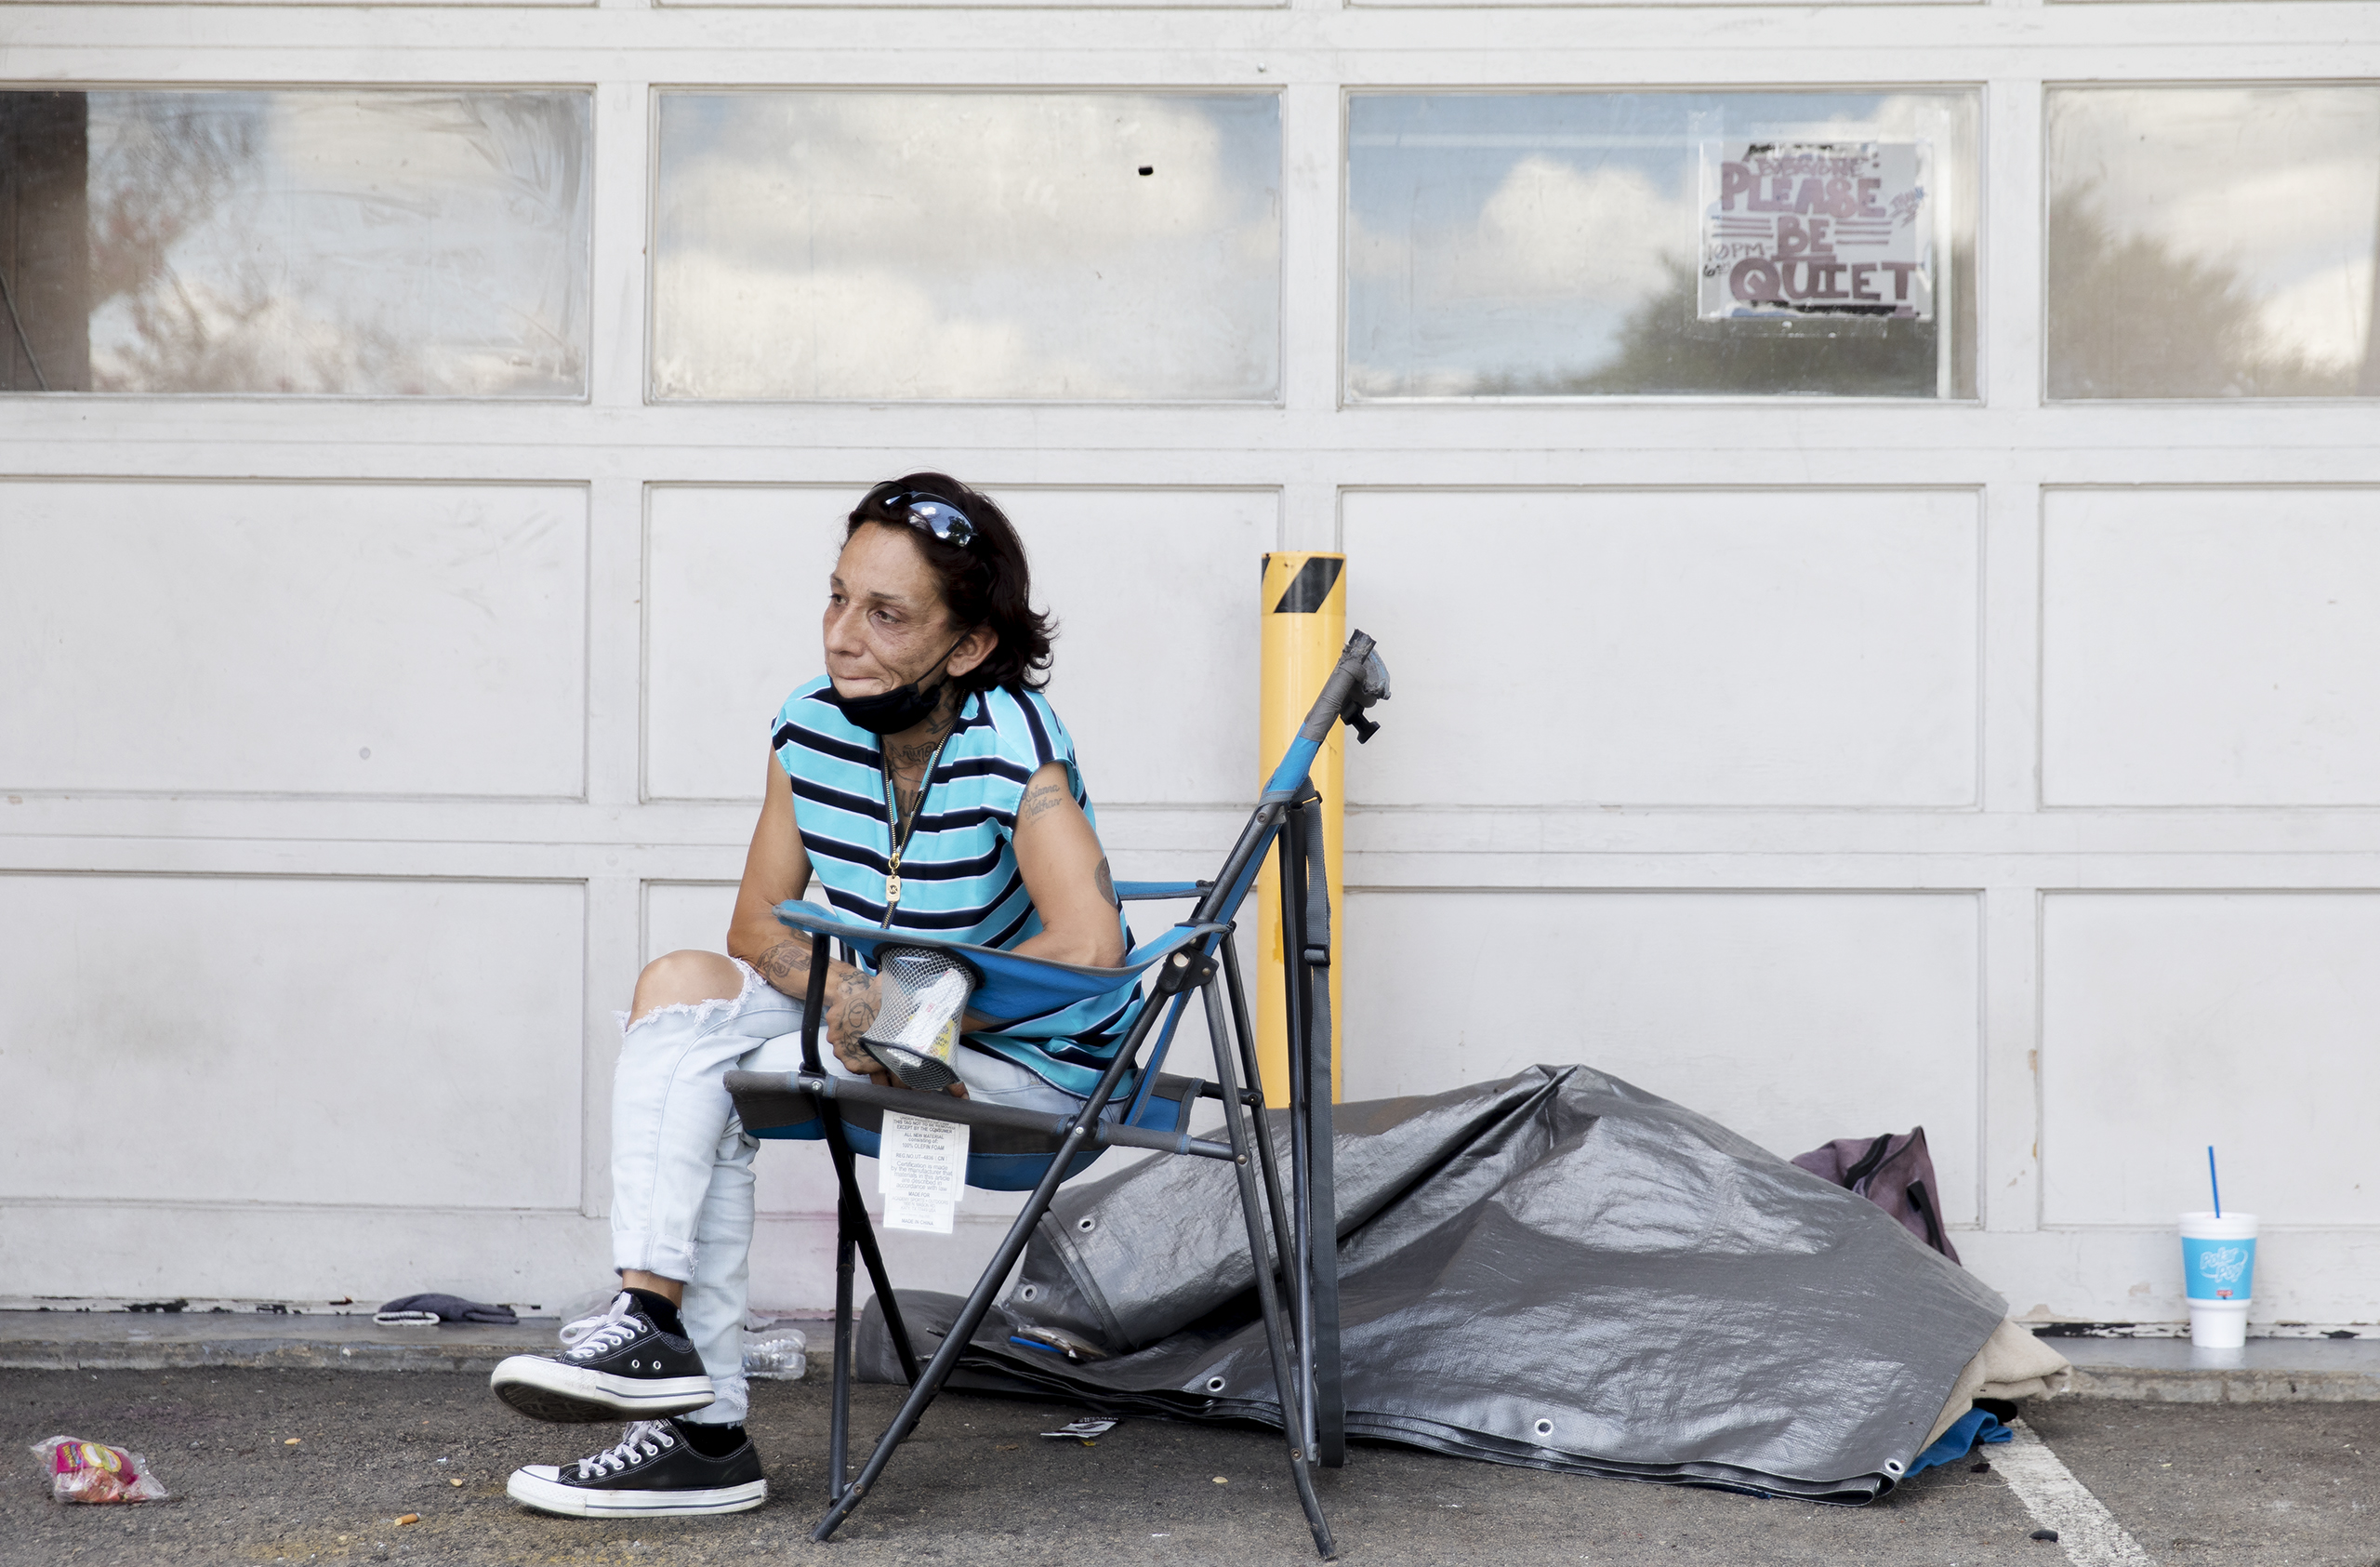 As District 1 field office changes hands, fate of homeless encampment uncertain